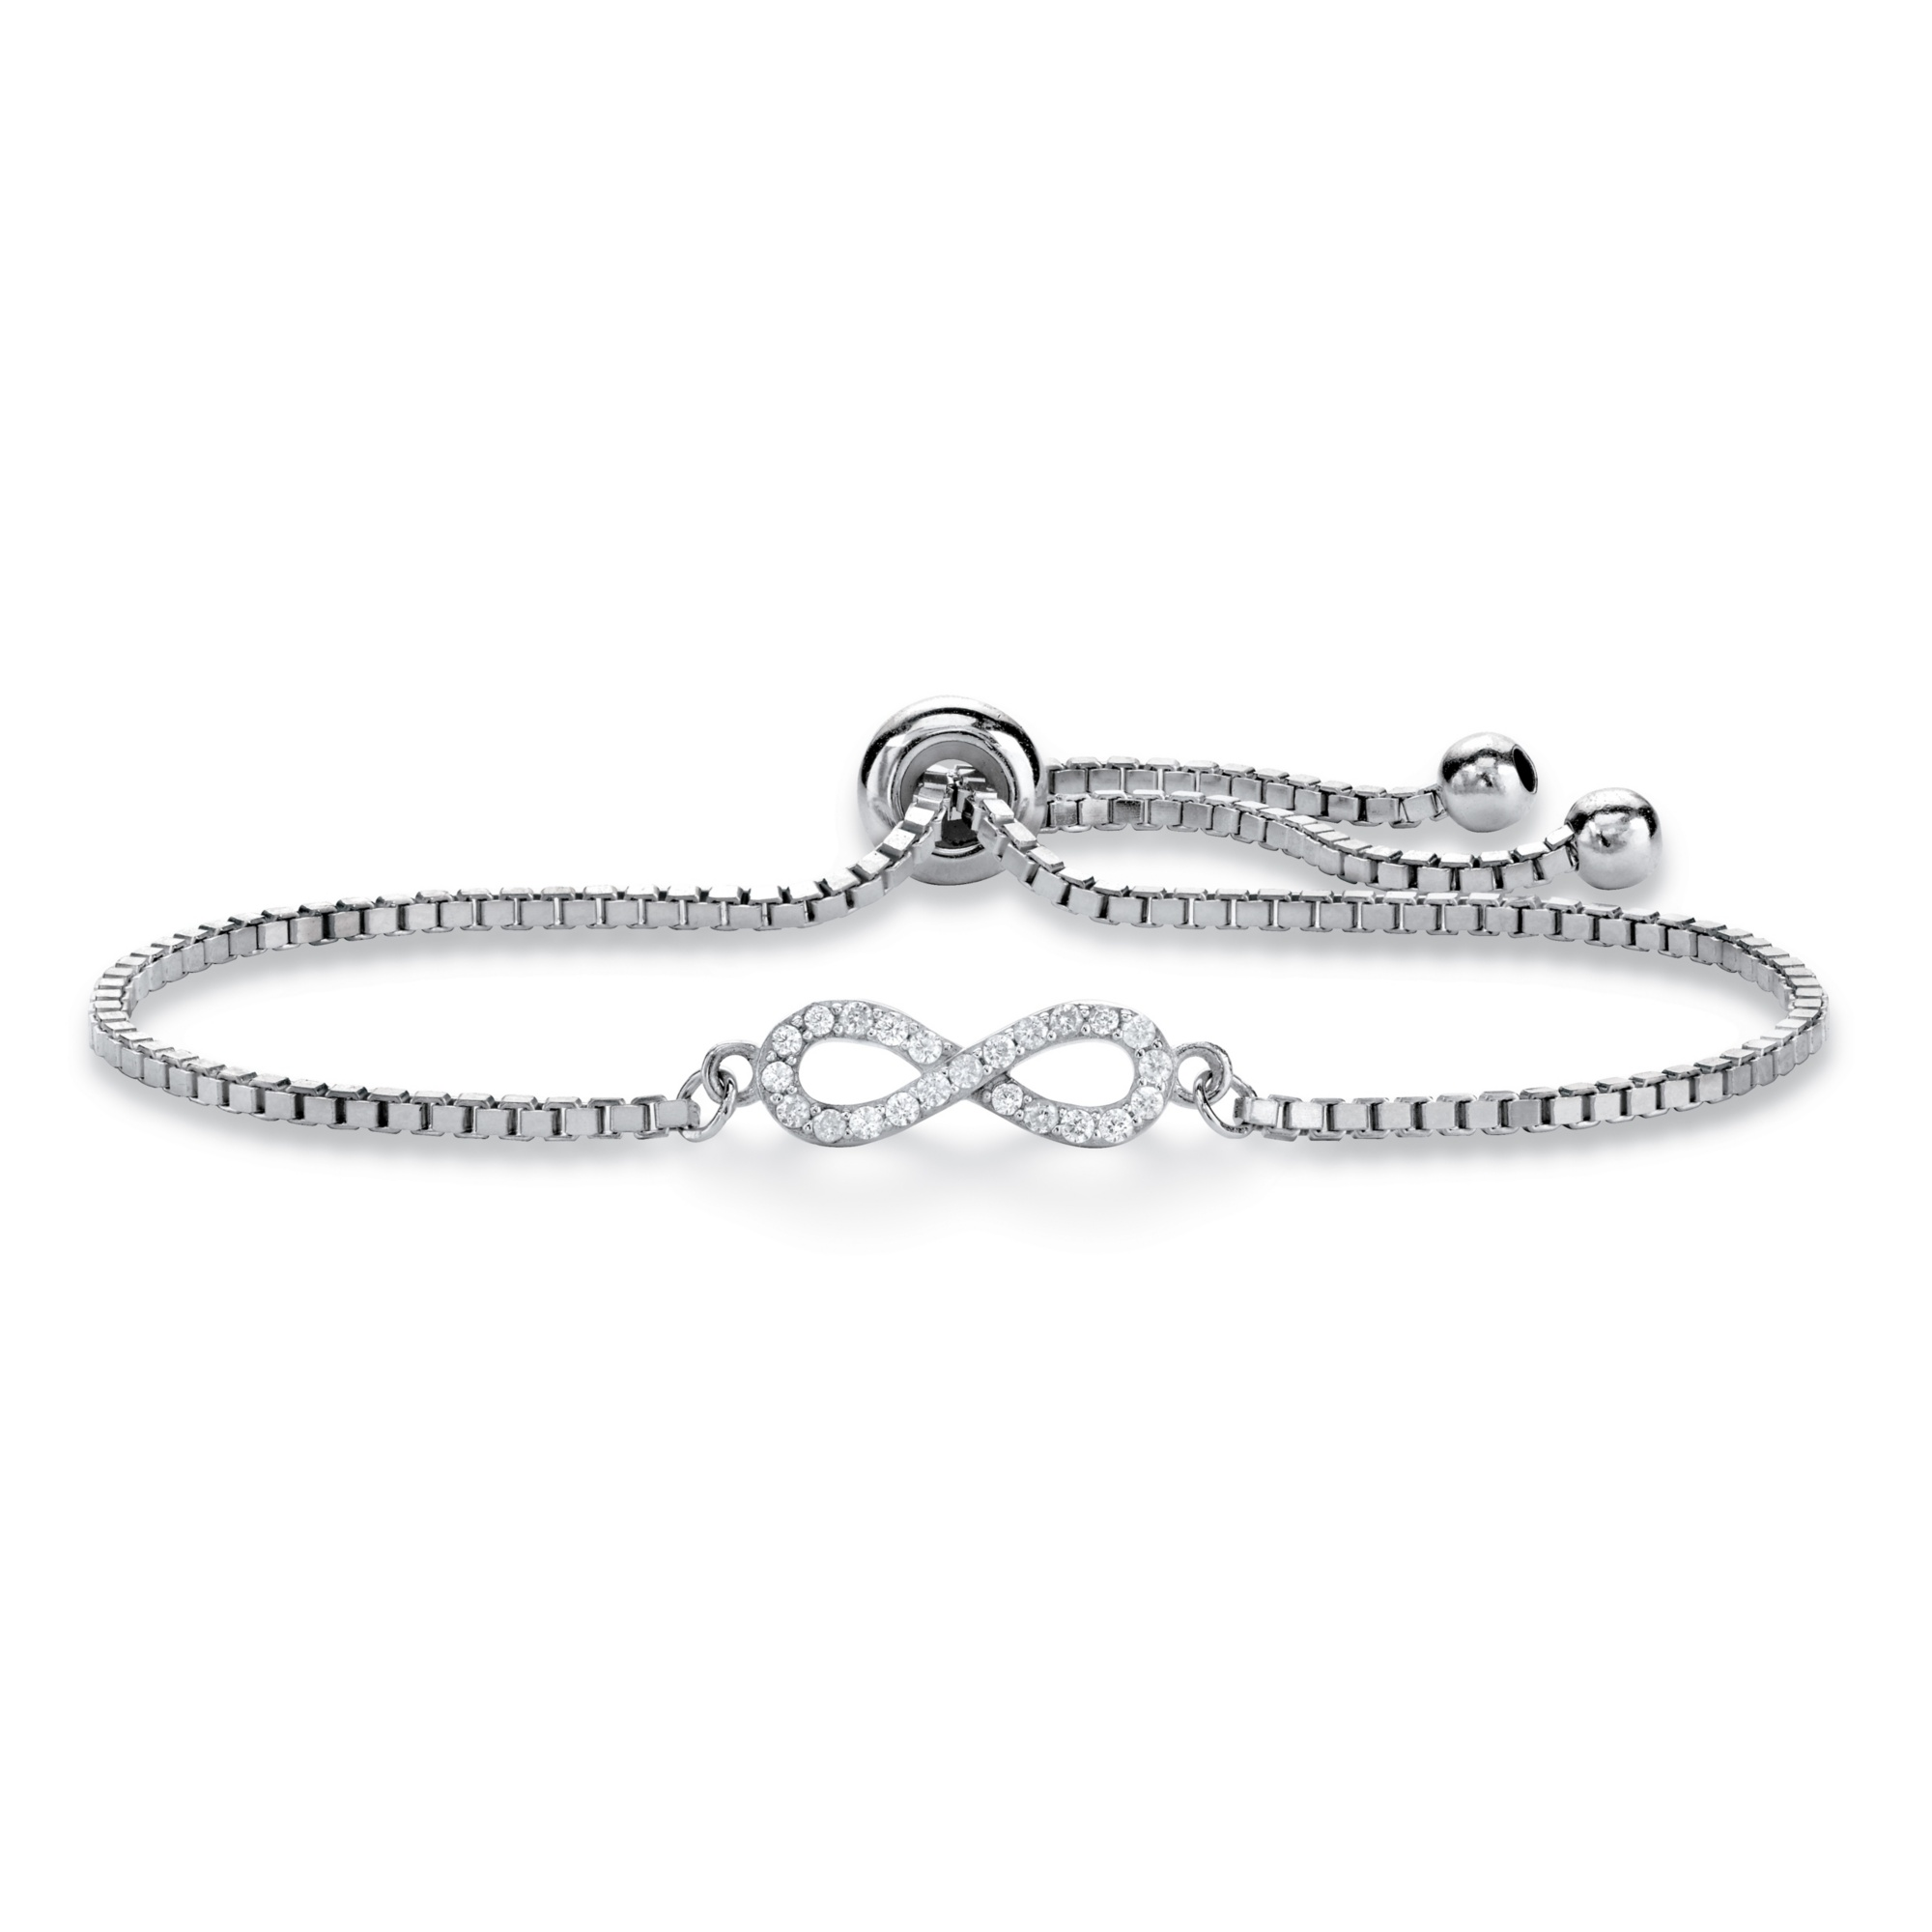 power collections bracelet cross online of links spo uk silver horizontal shop sterling indonesia